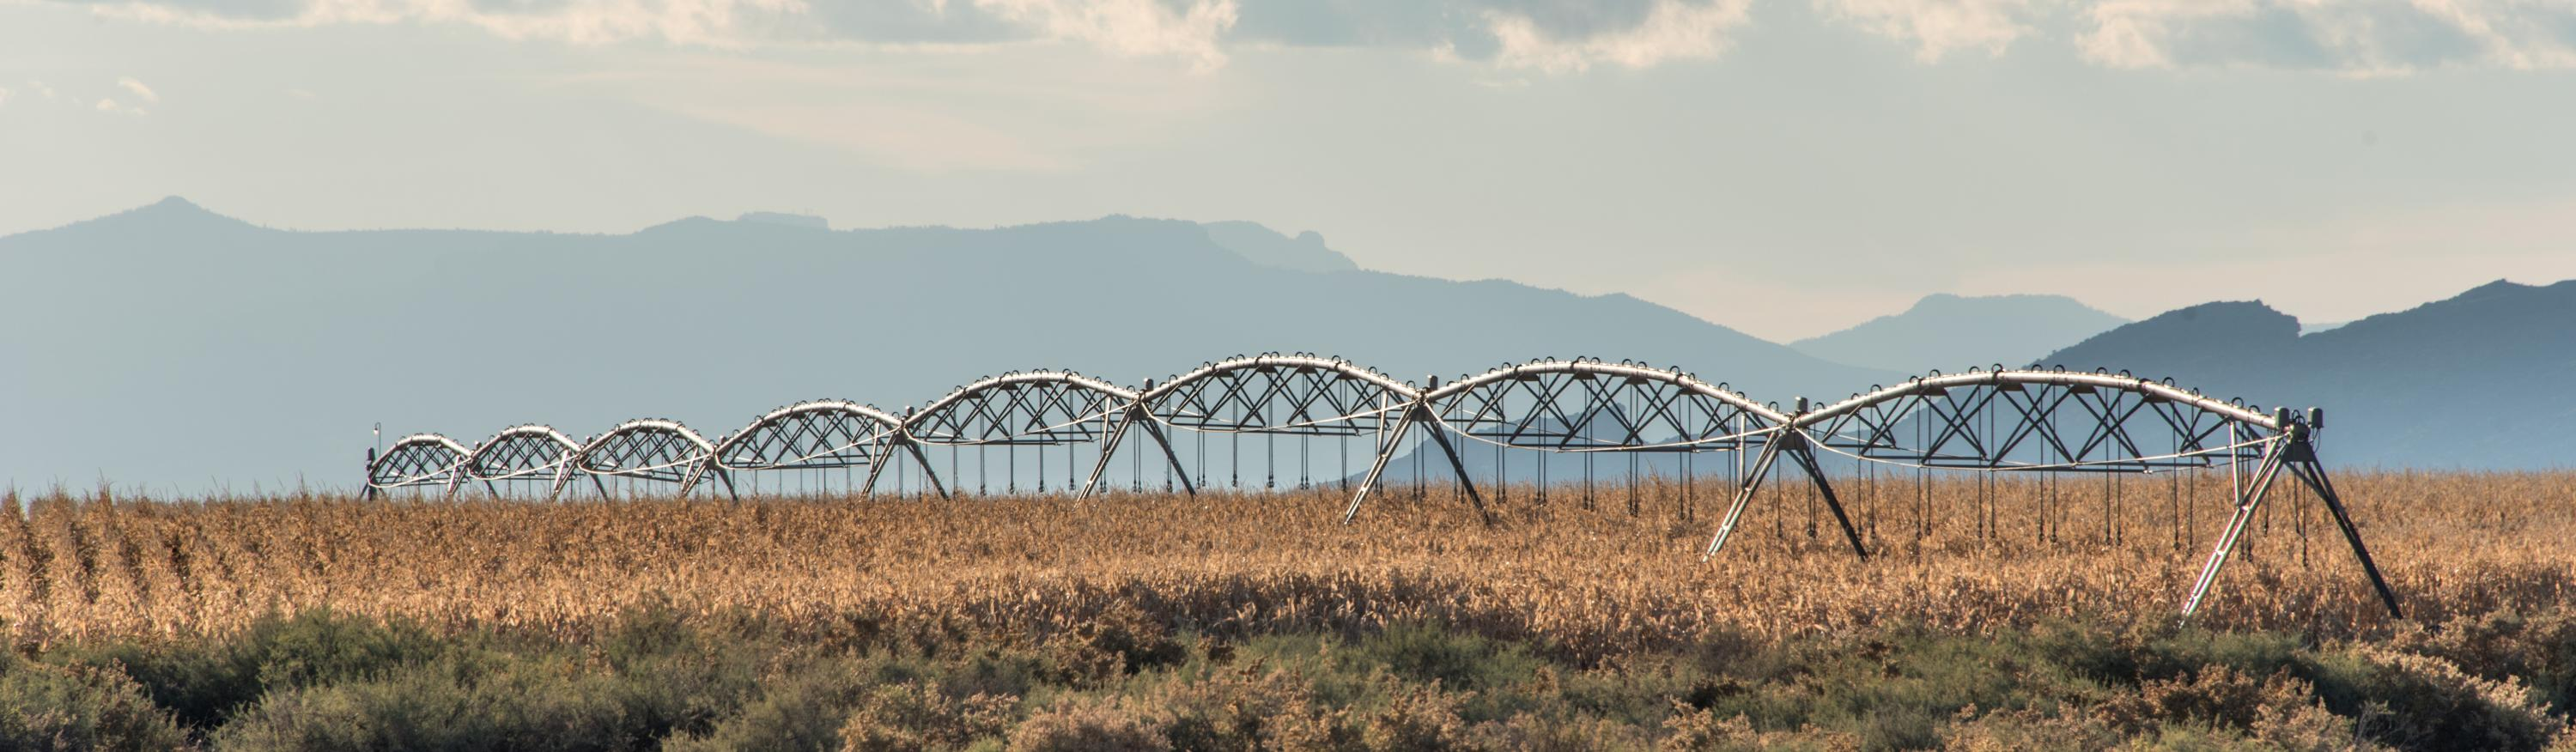 Agriculture in San Juan County, NM